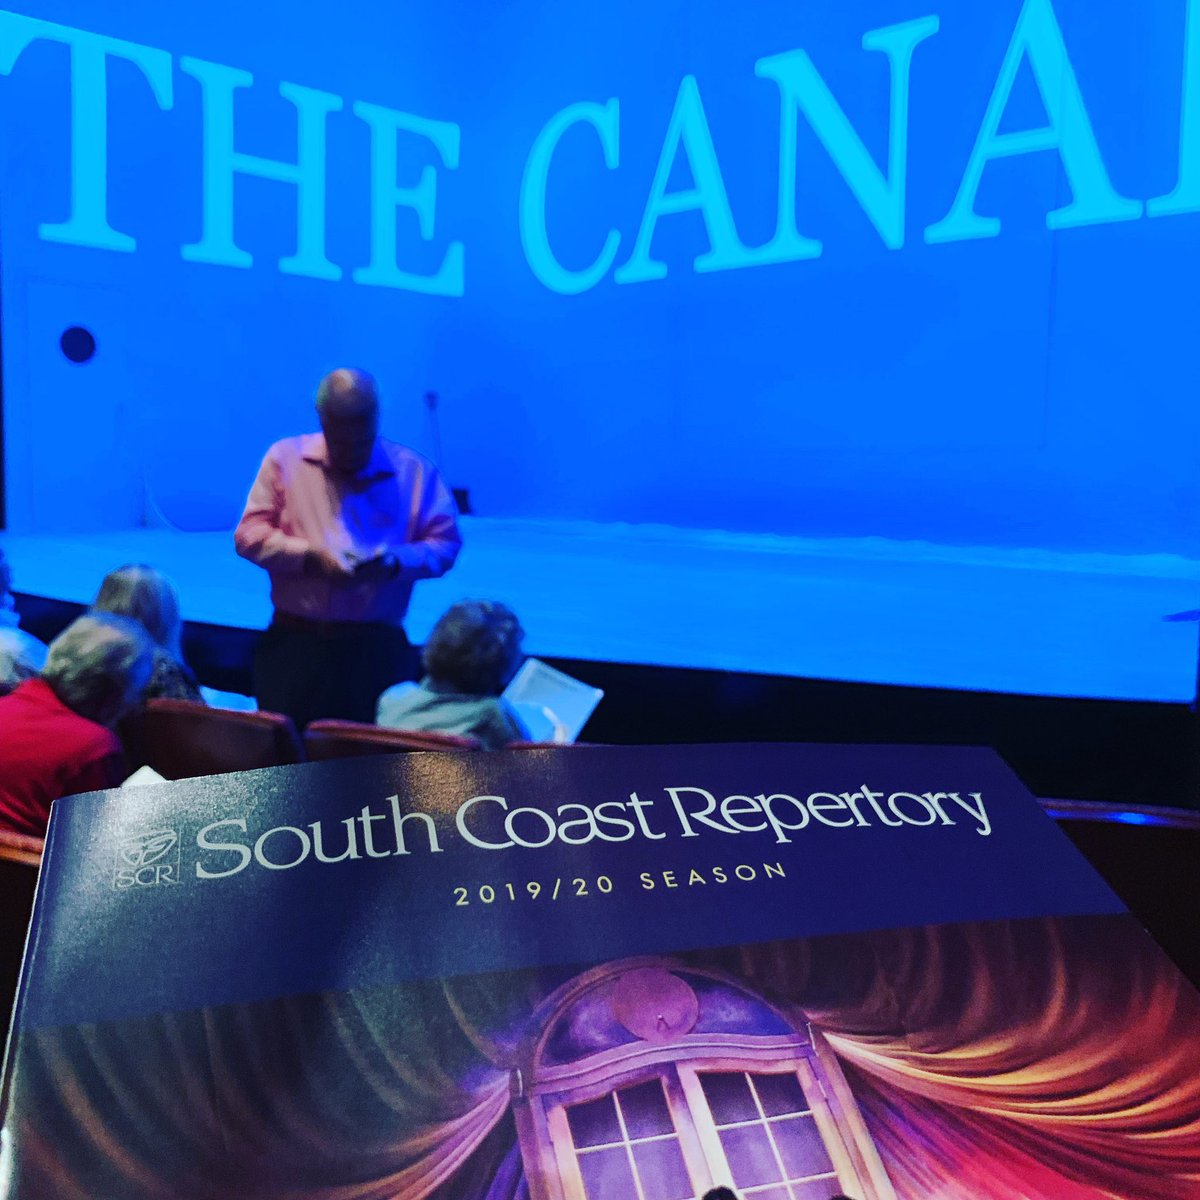 Tonight's assignment: the brand new #play THE CANADIANS by Adam Bock at @SouthCoastRep Such an endearing rom-com style stage play! 🚢❤️🌈🏳️🌈 #theatre #lgbt #gaycruise #oc #orangecounty